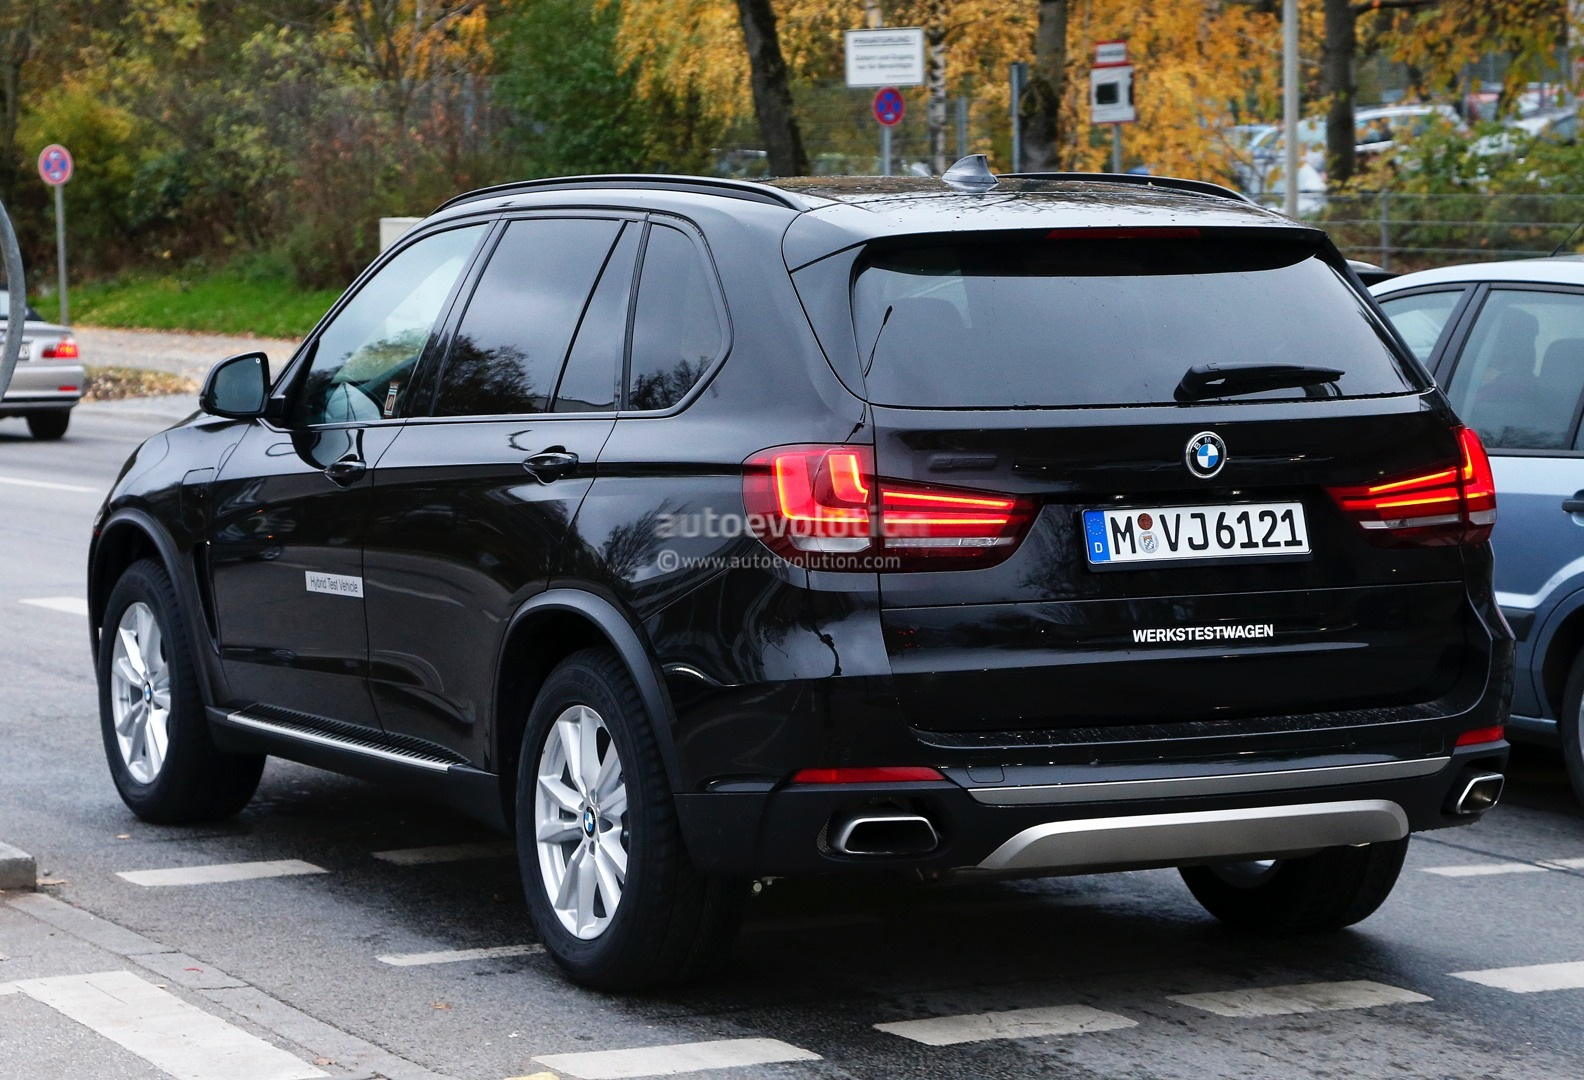 2014 BMW F15 X5 Cruise Control Buttons Guide - autoevolution